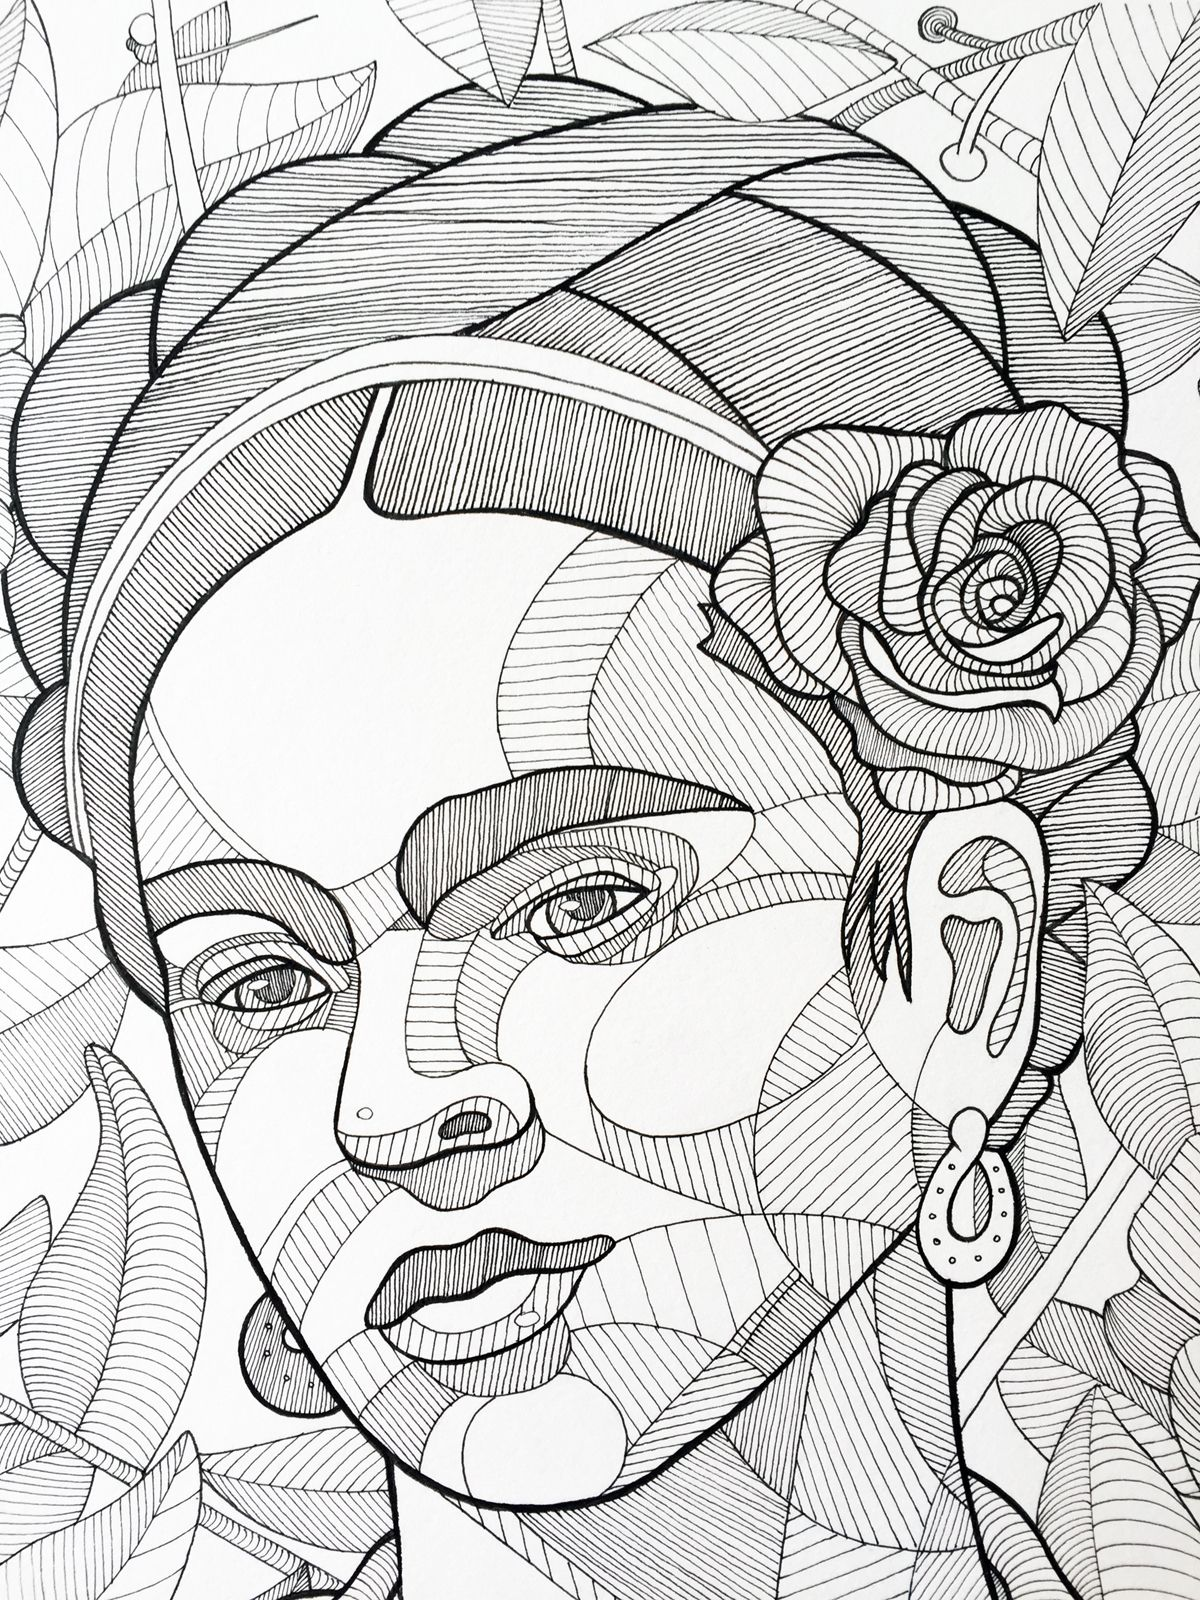 Frida Kahlo Ink On Paper 14 X 17 Prints Available For